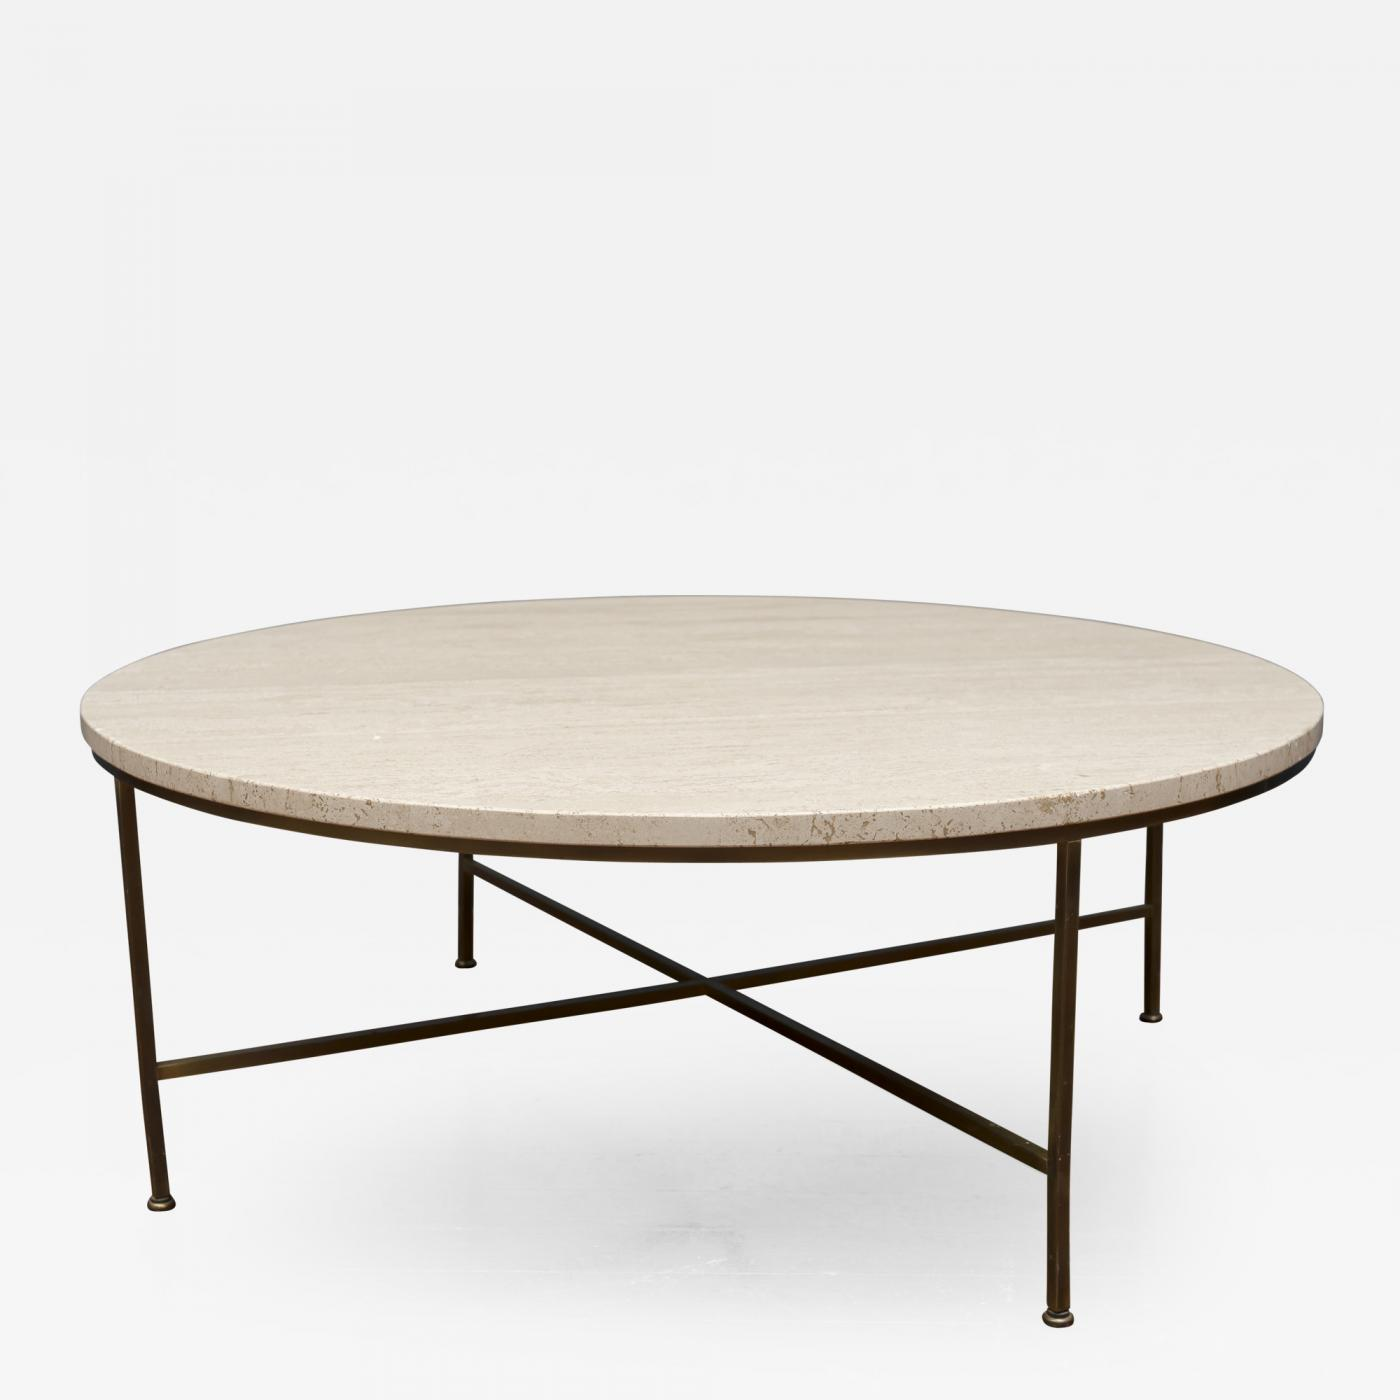 Paul Mccobb Paul Mccobb Travertine Round Coffee Table